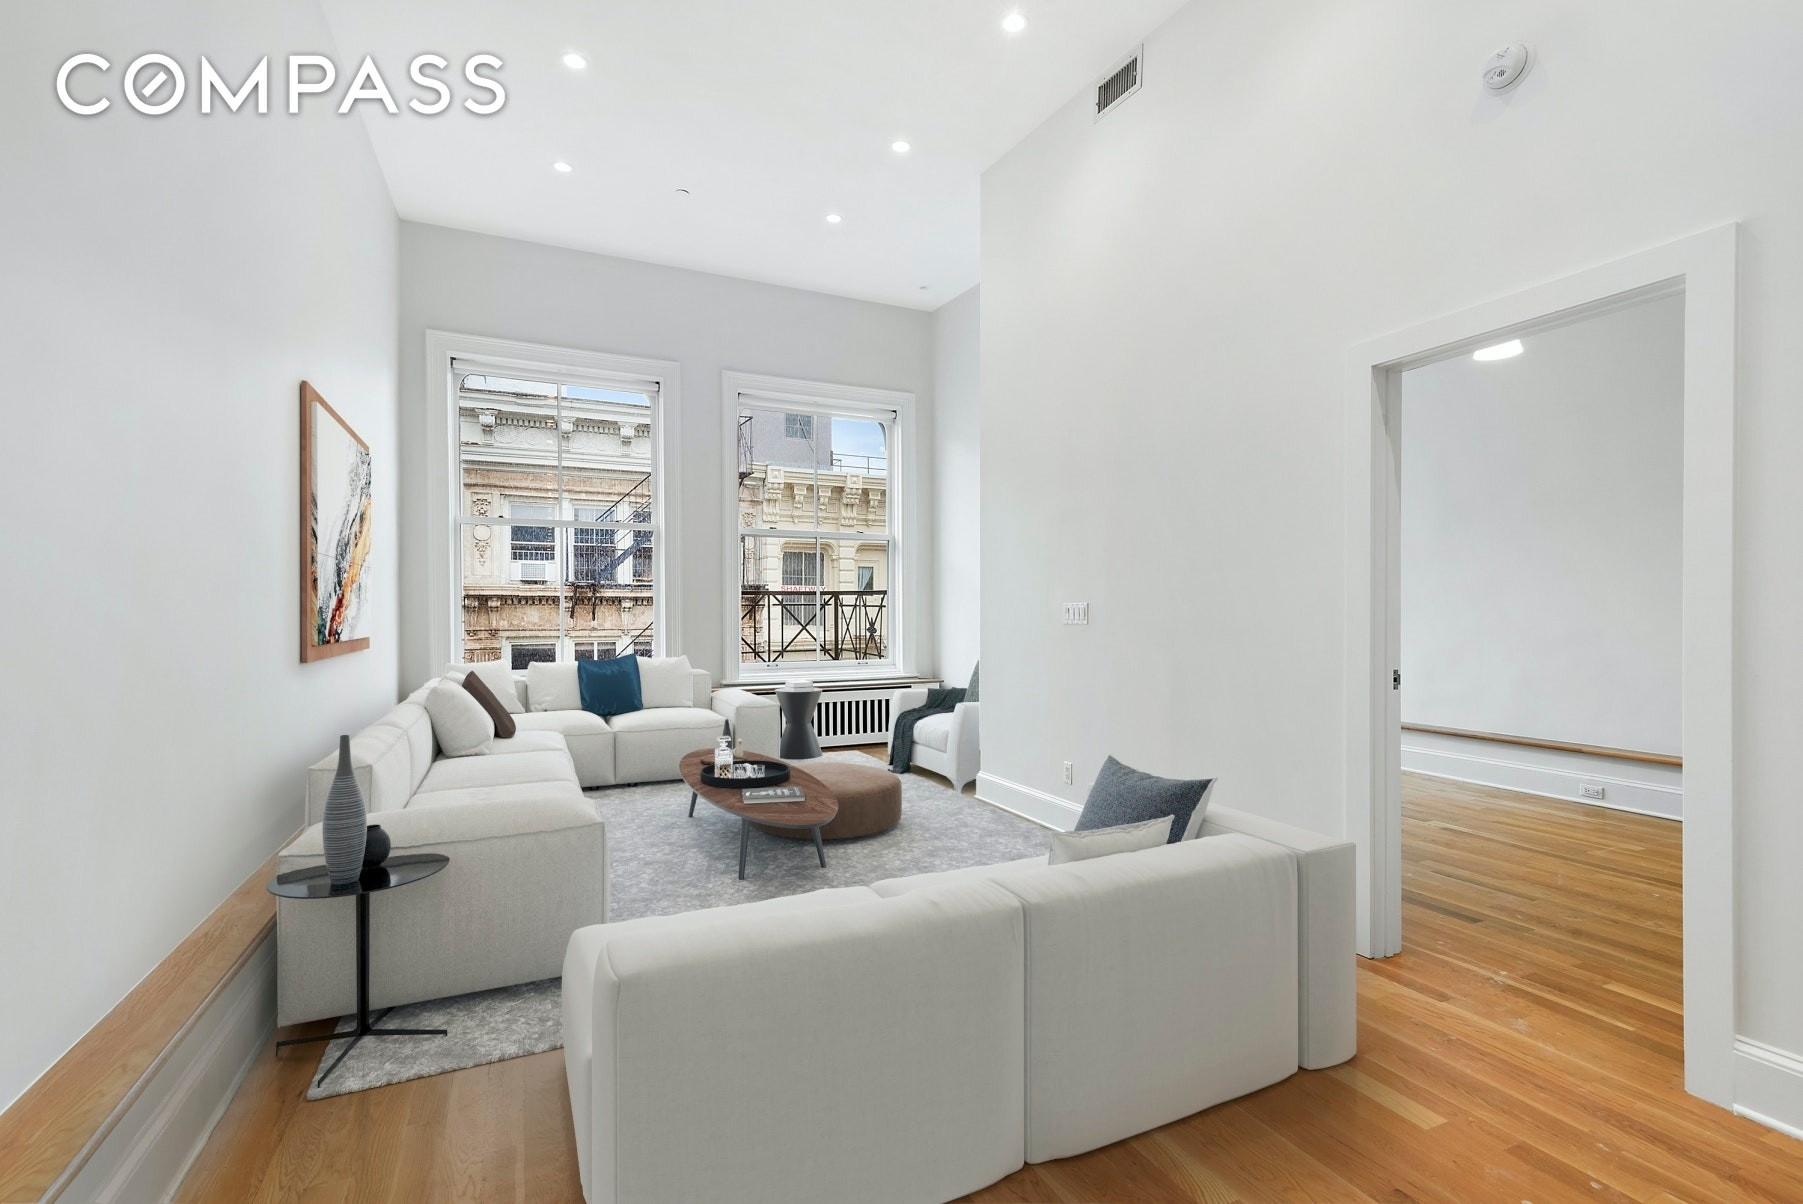 Property at 77 Greene St, 5 SoHo, New York, NY 10012